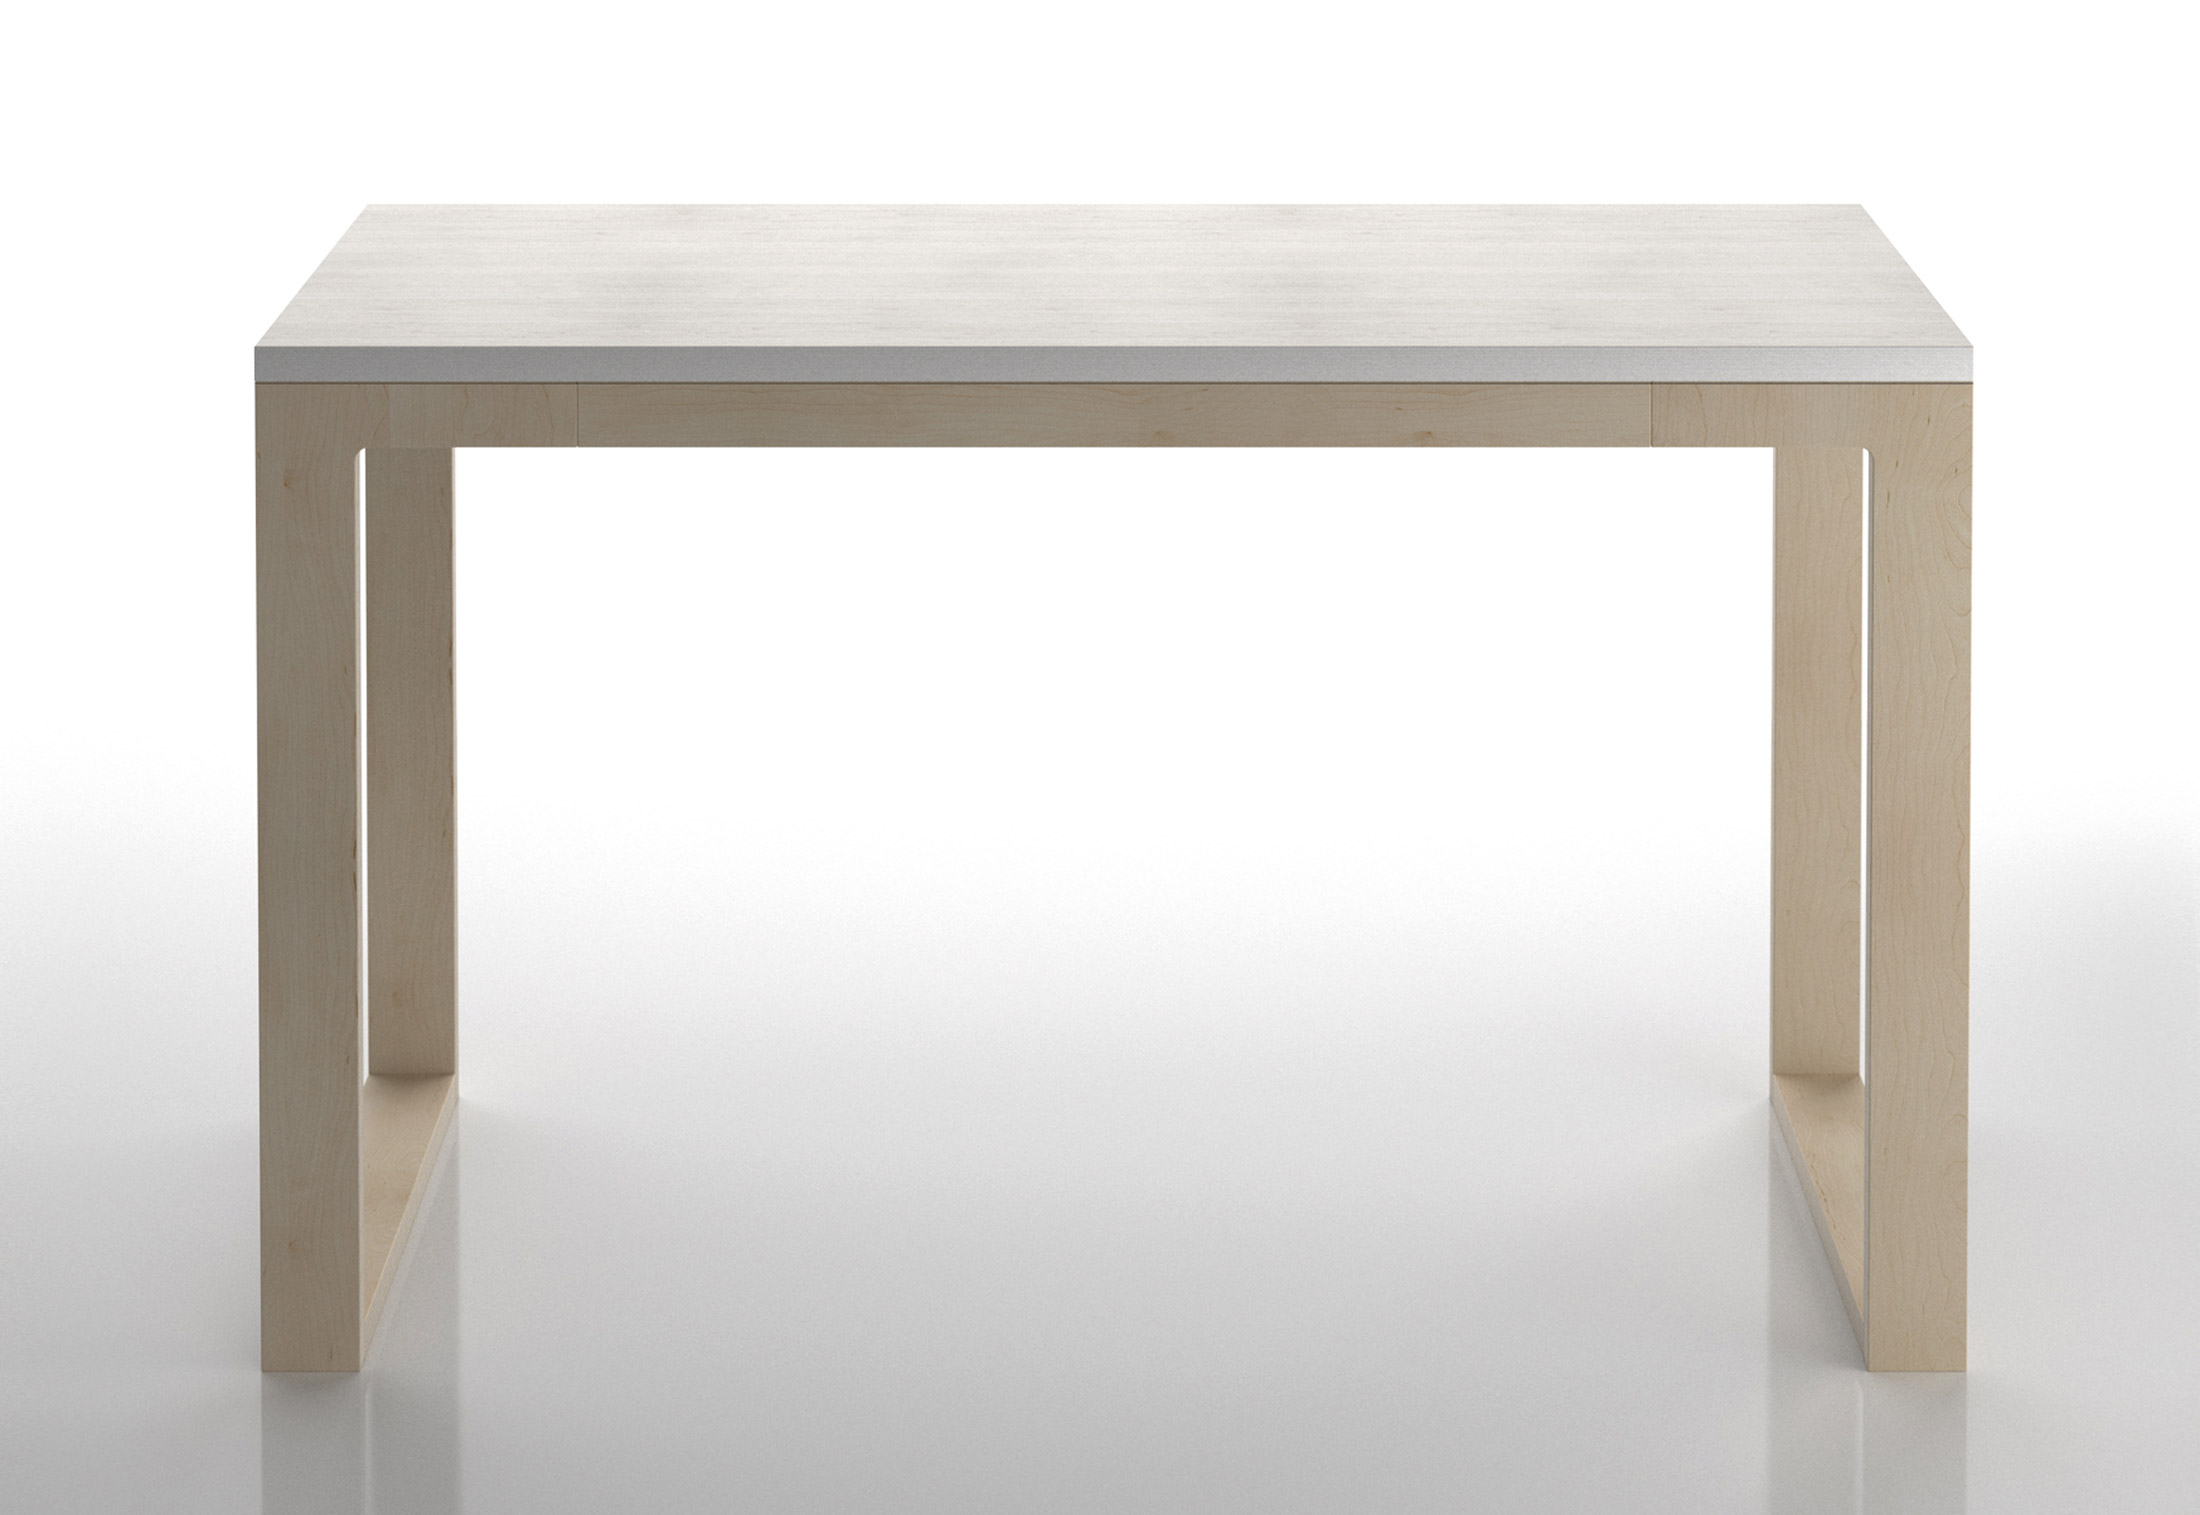 Just My Size Table By Danese